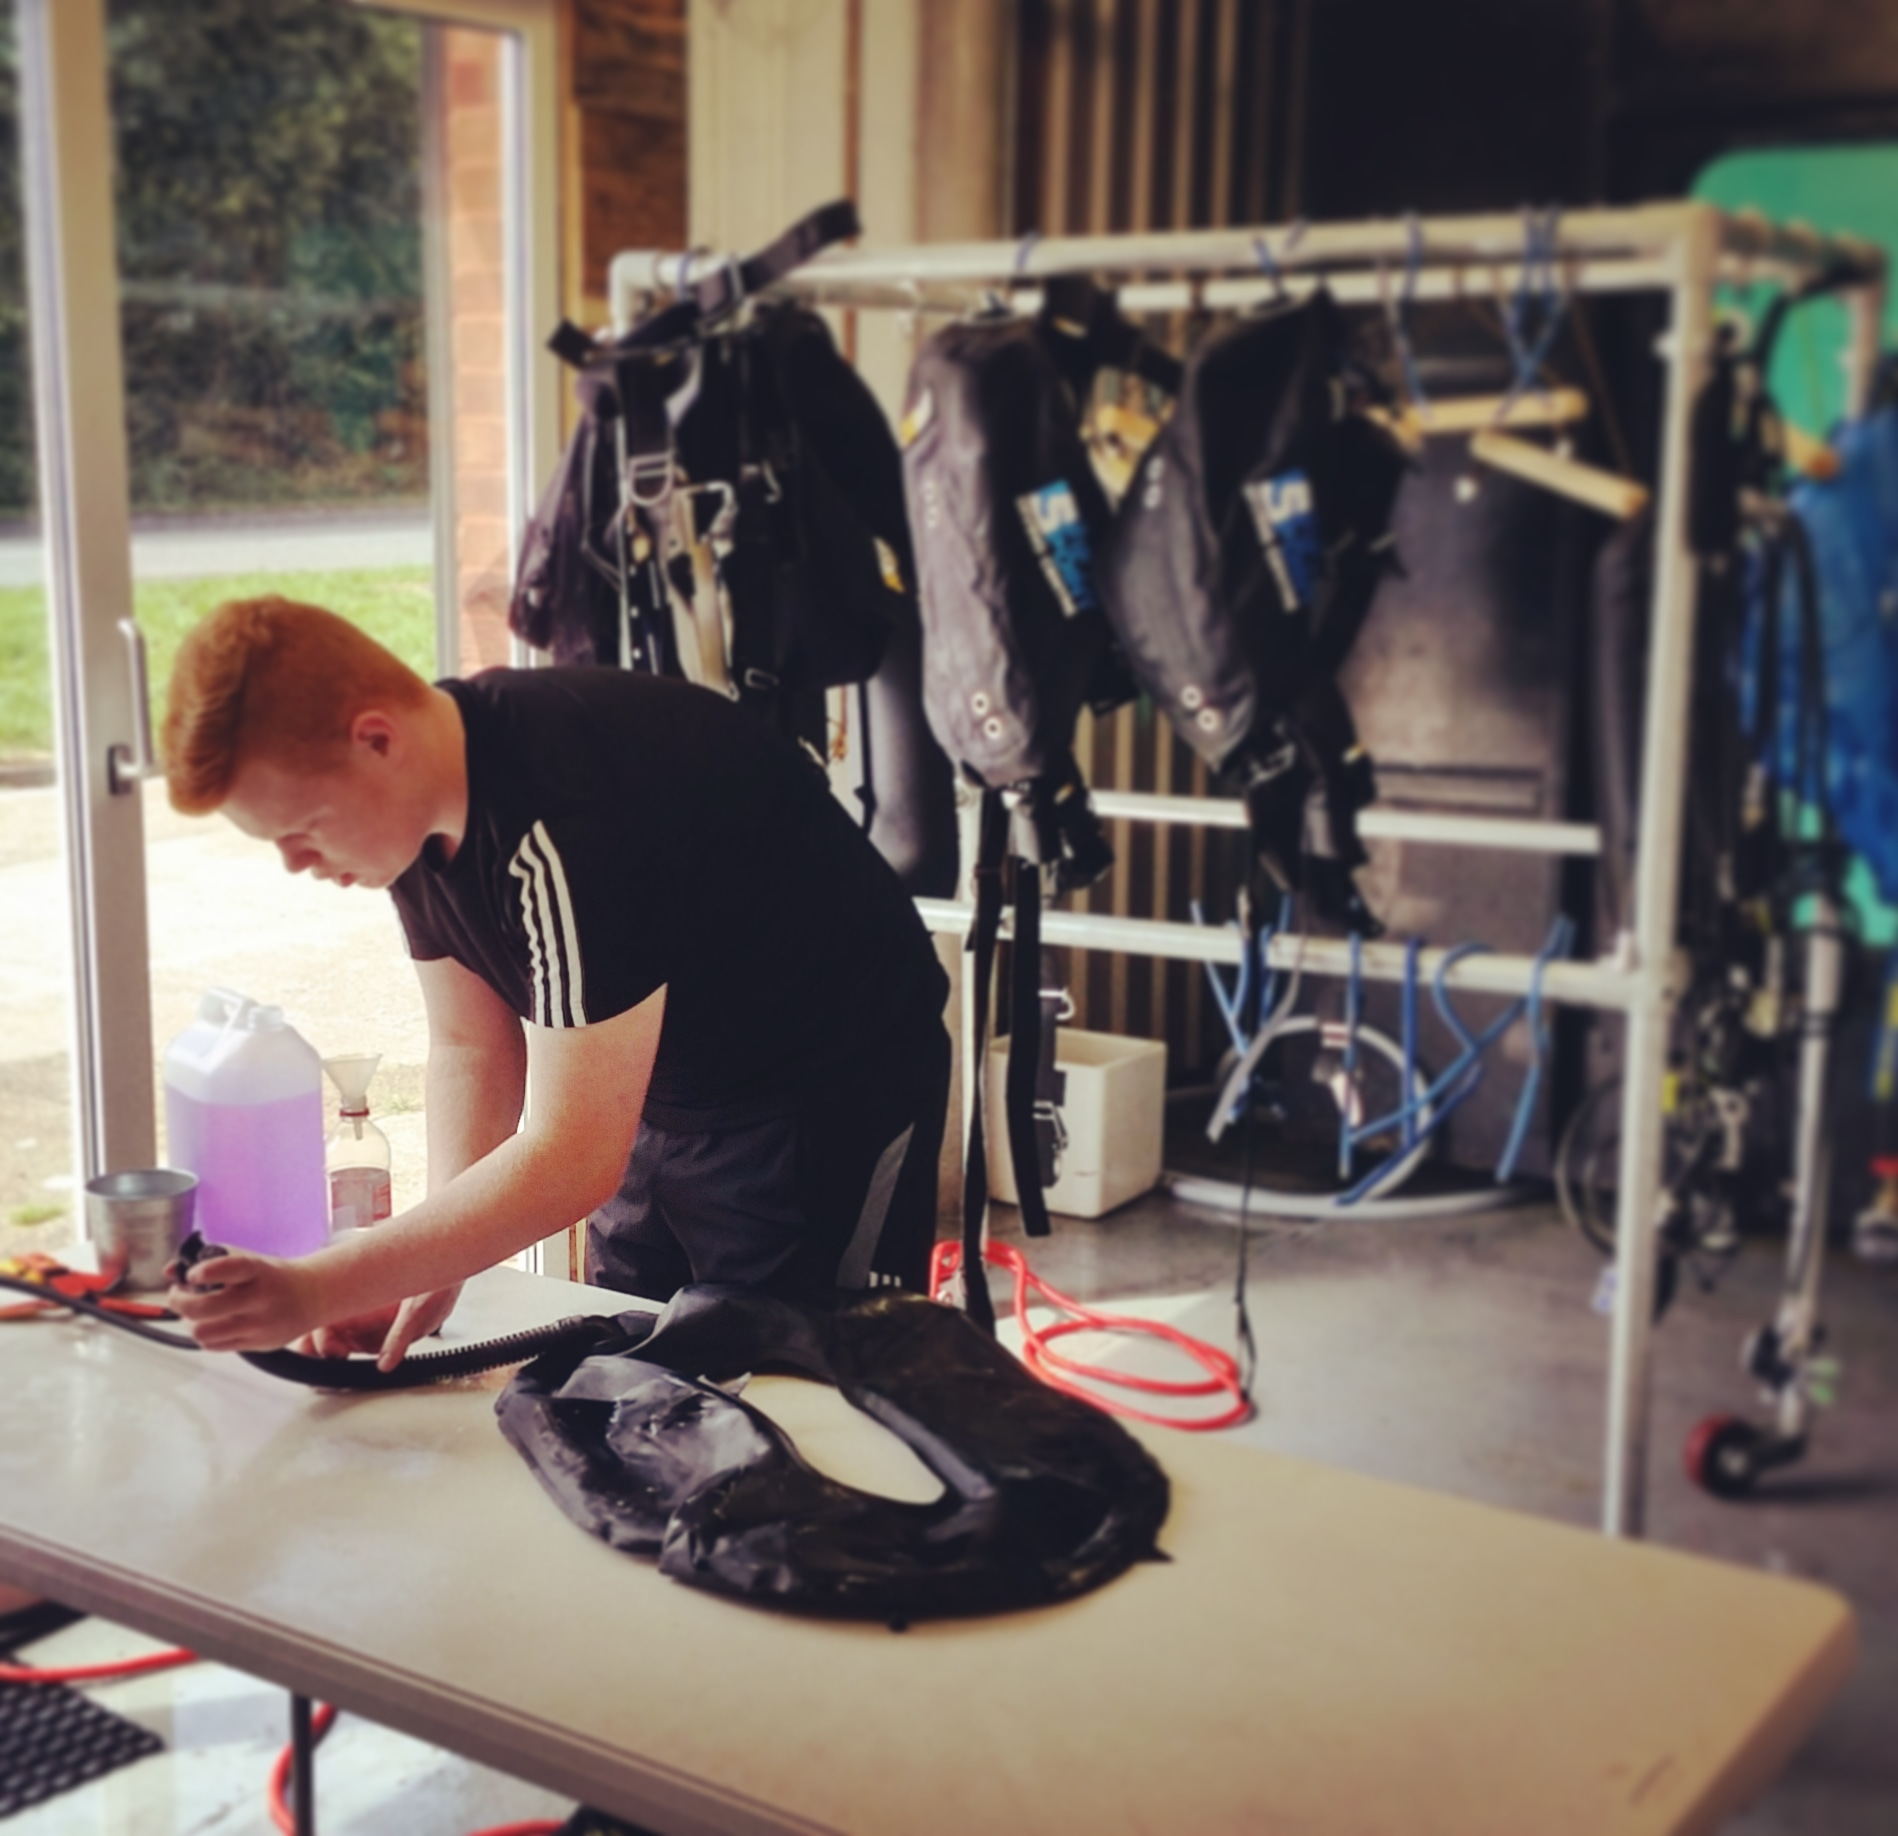 We regularly disinfect our rental scuba diving equipment